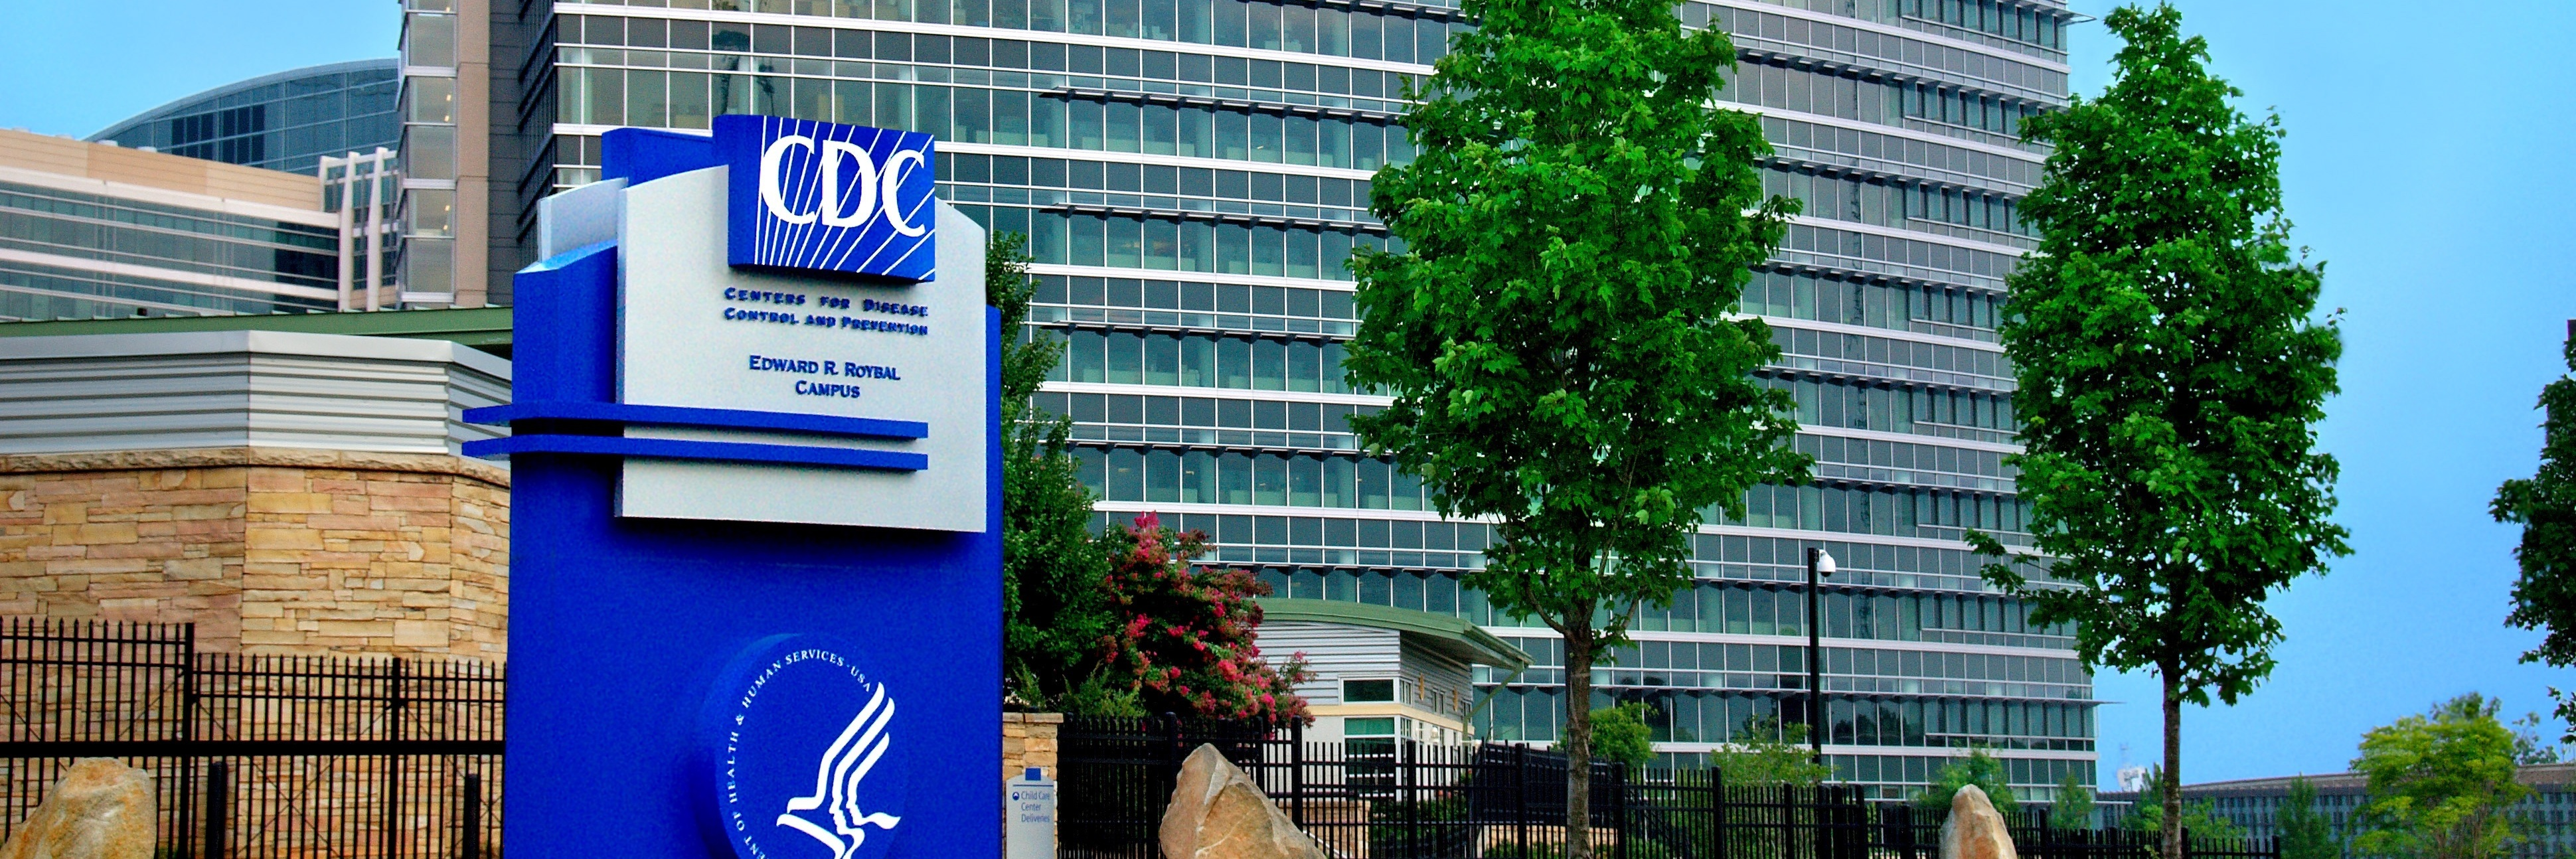 cdc centers for disease control and prevention building exterior